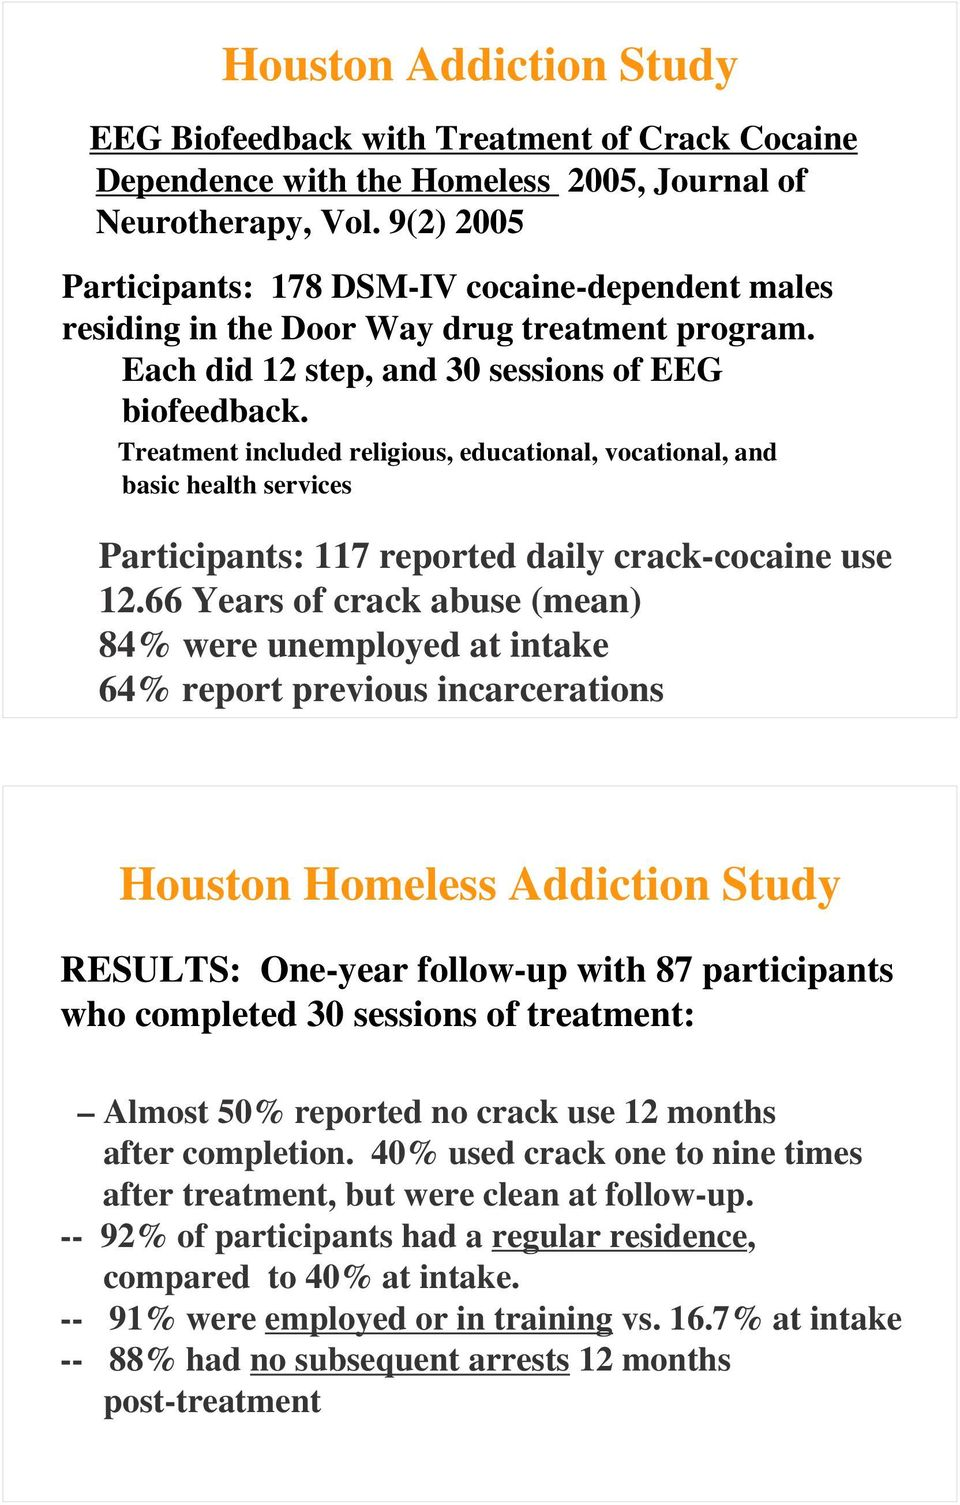 Treatment included religious, educational, vocational, and basic health services Participants: 117 reported daily crack-cocaine use 12.